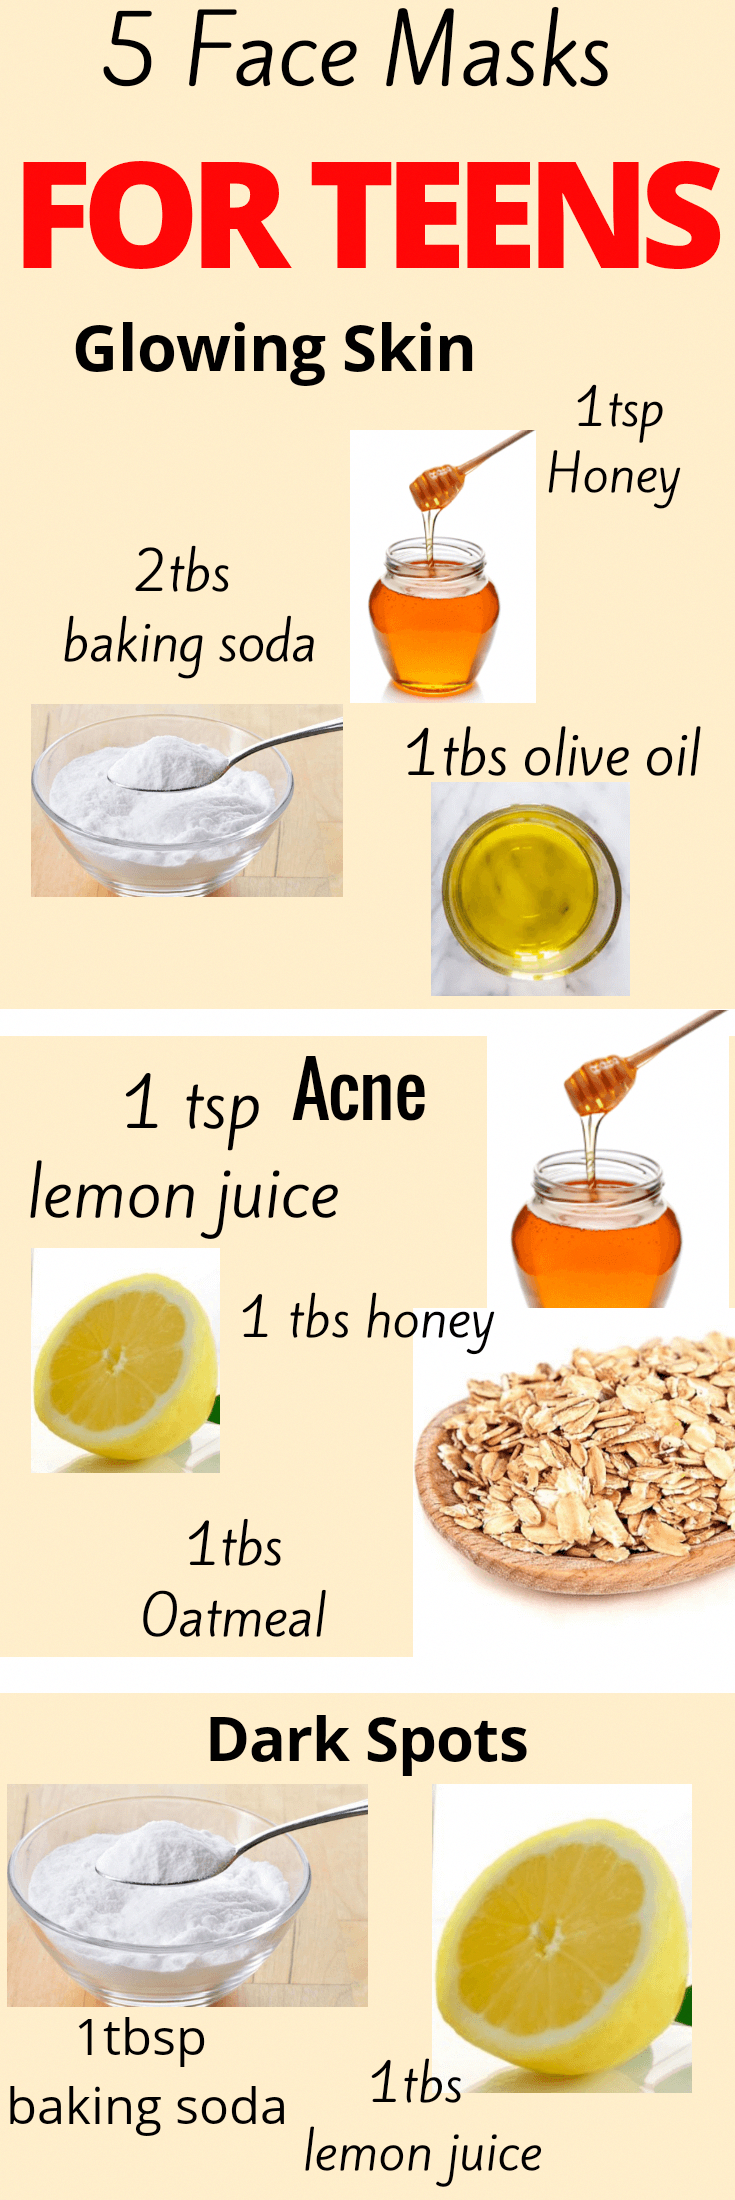 Homemade face mask for teens naturalfacemasks #homemadefacelotion